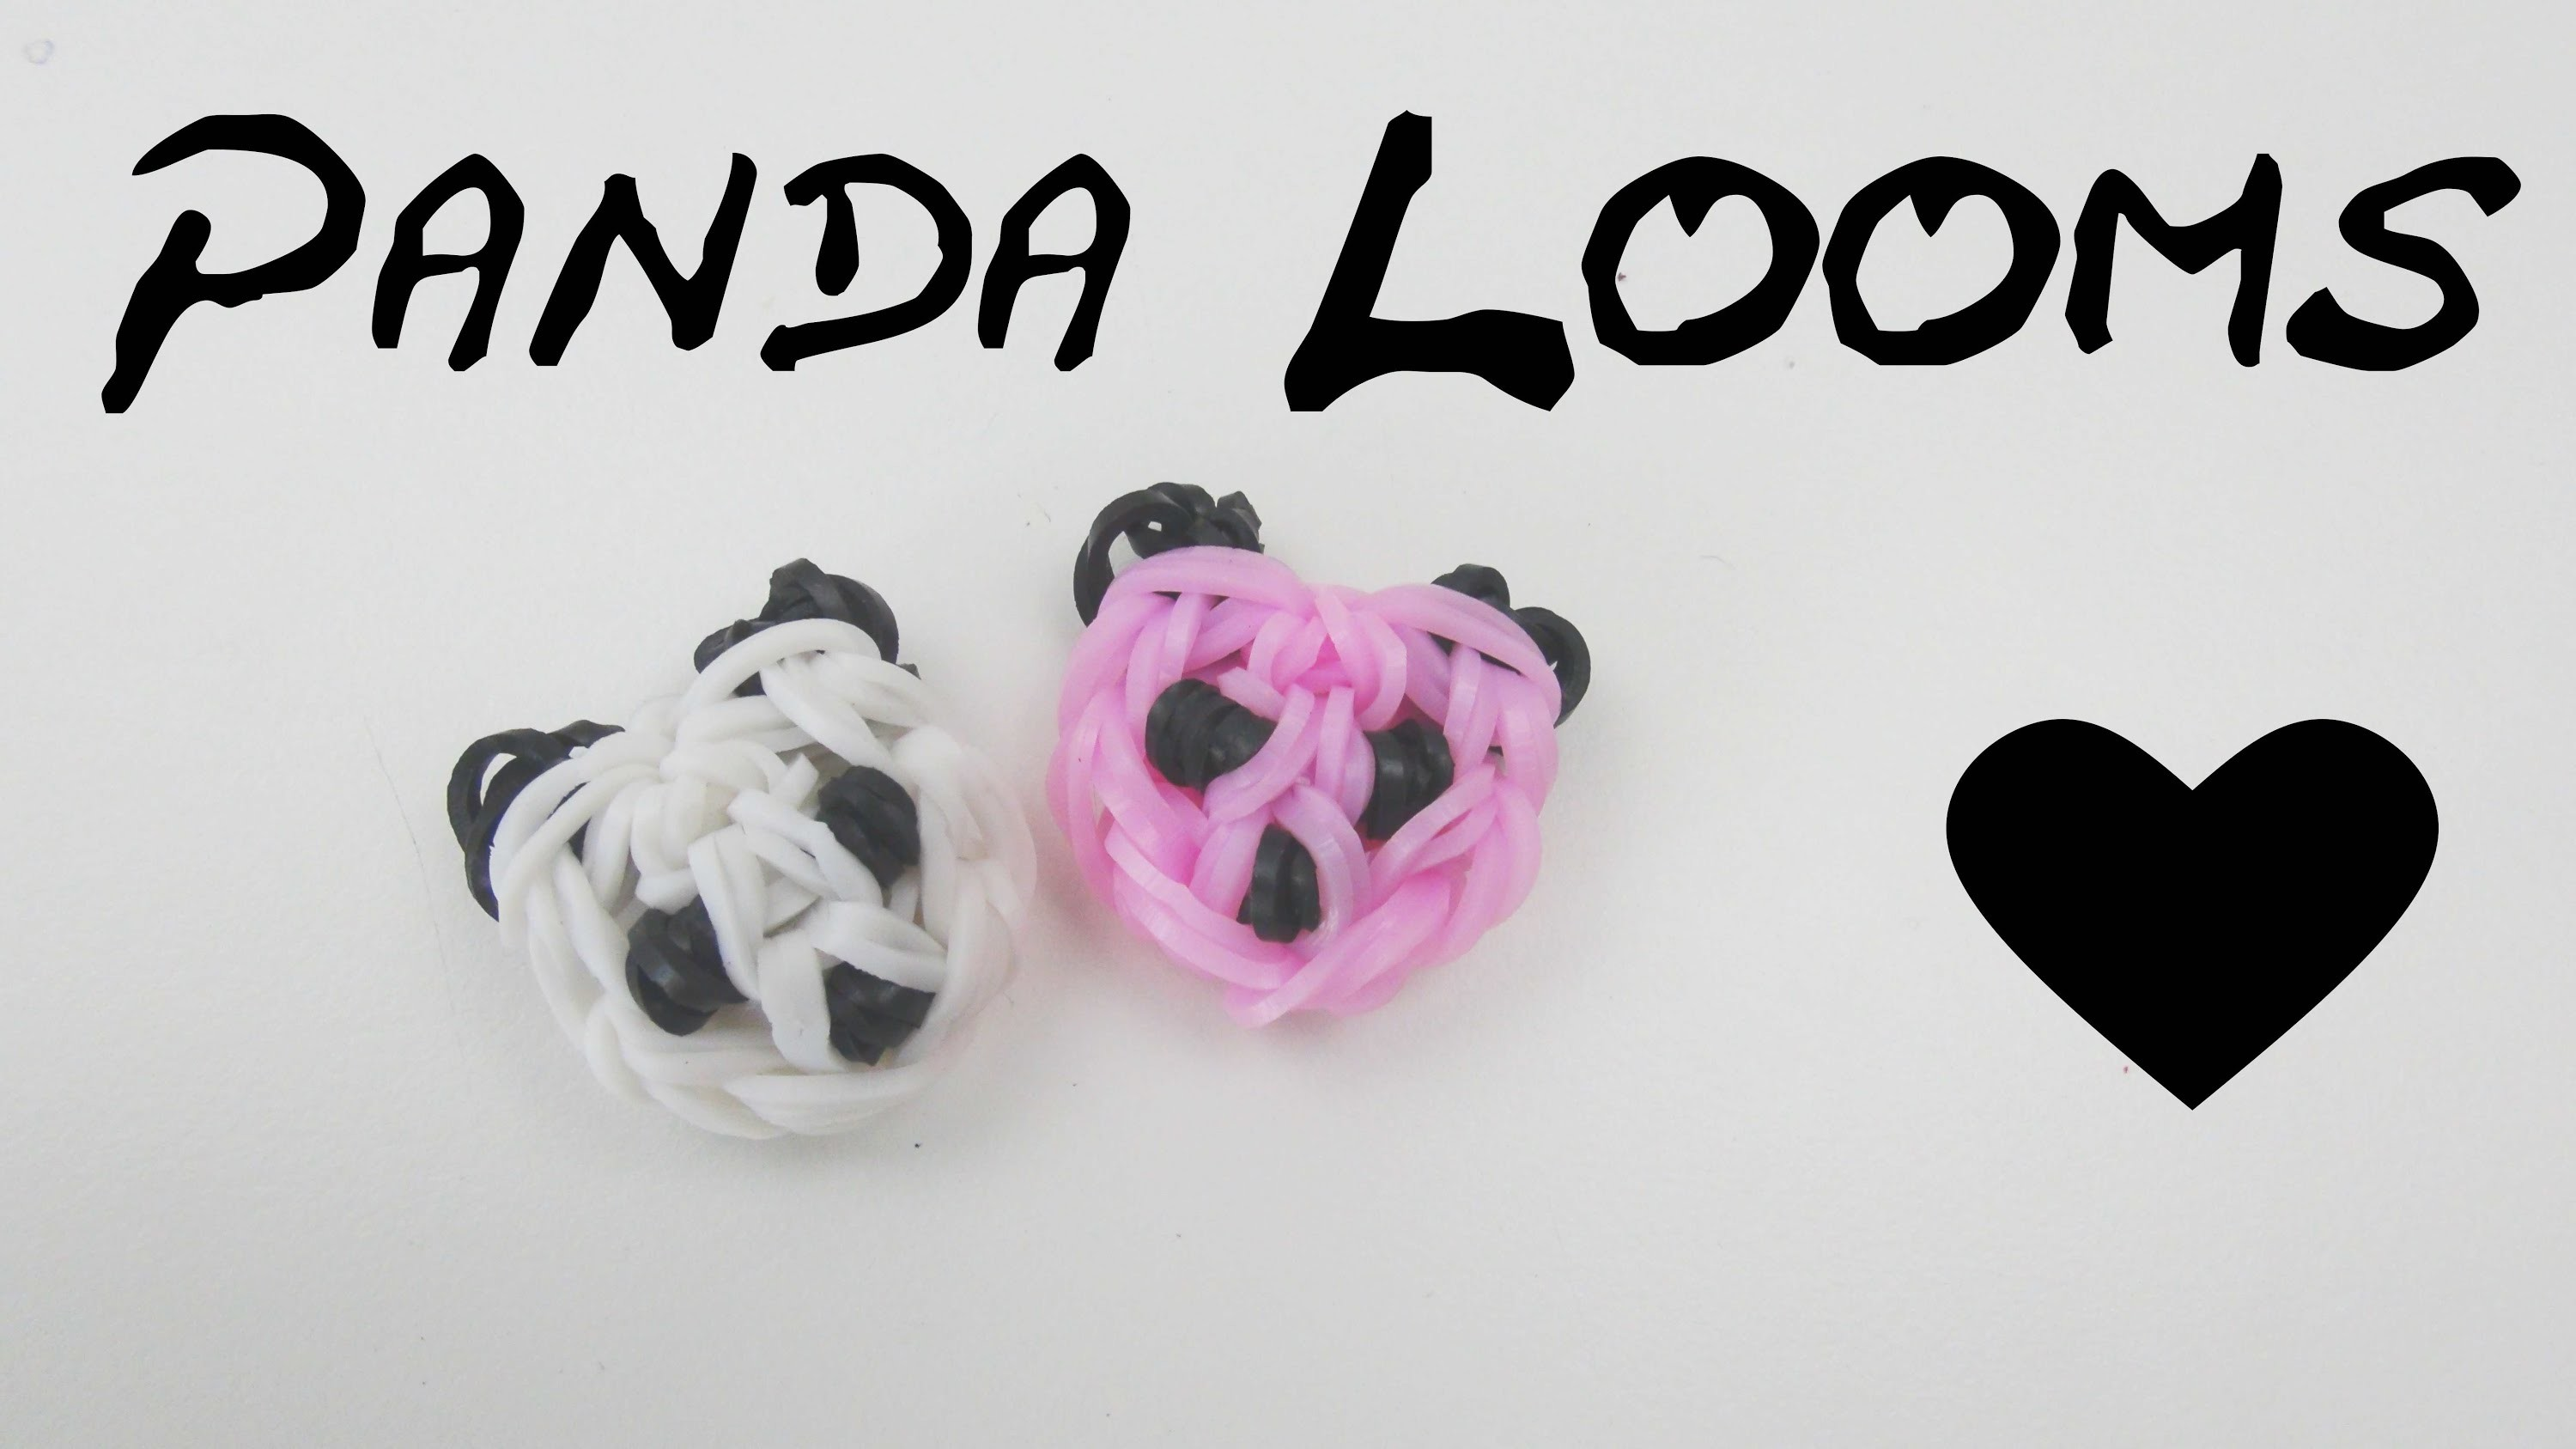 loom bands panda kopf anh nger m h kelnadel u loom board selber machen anleitung deutsch panda. Black Bedroom Furniture Sets. Home Design Ideas